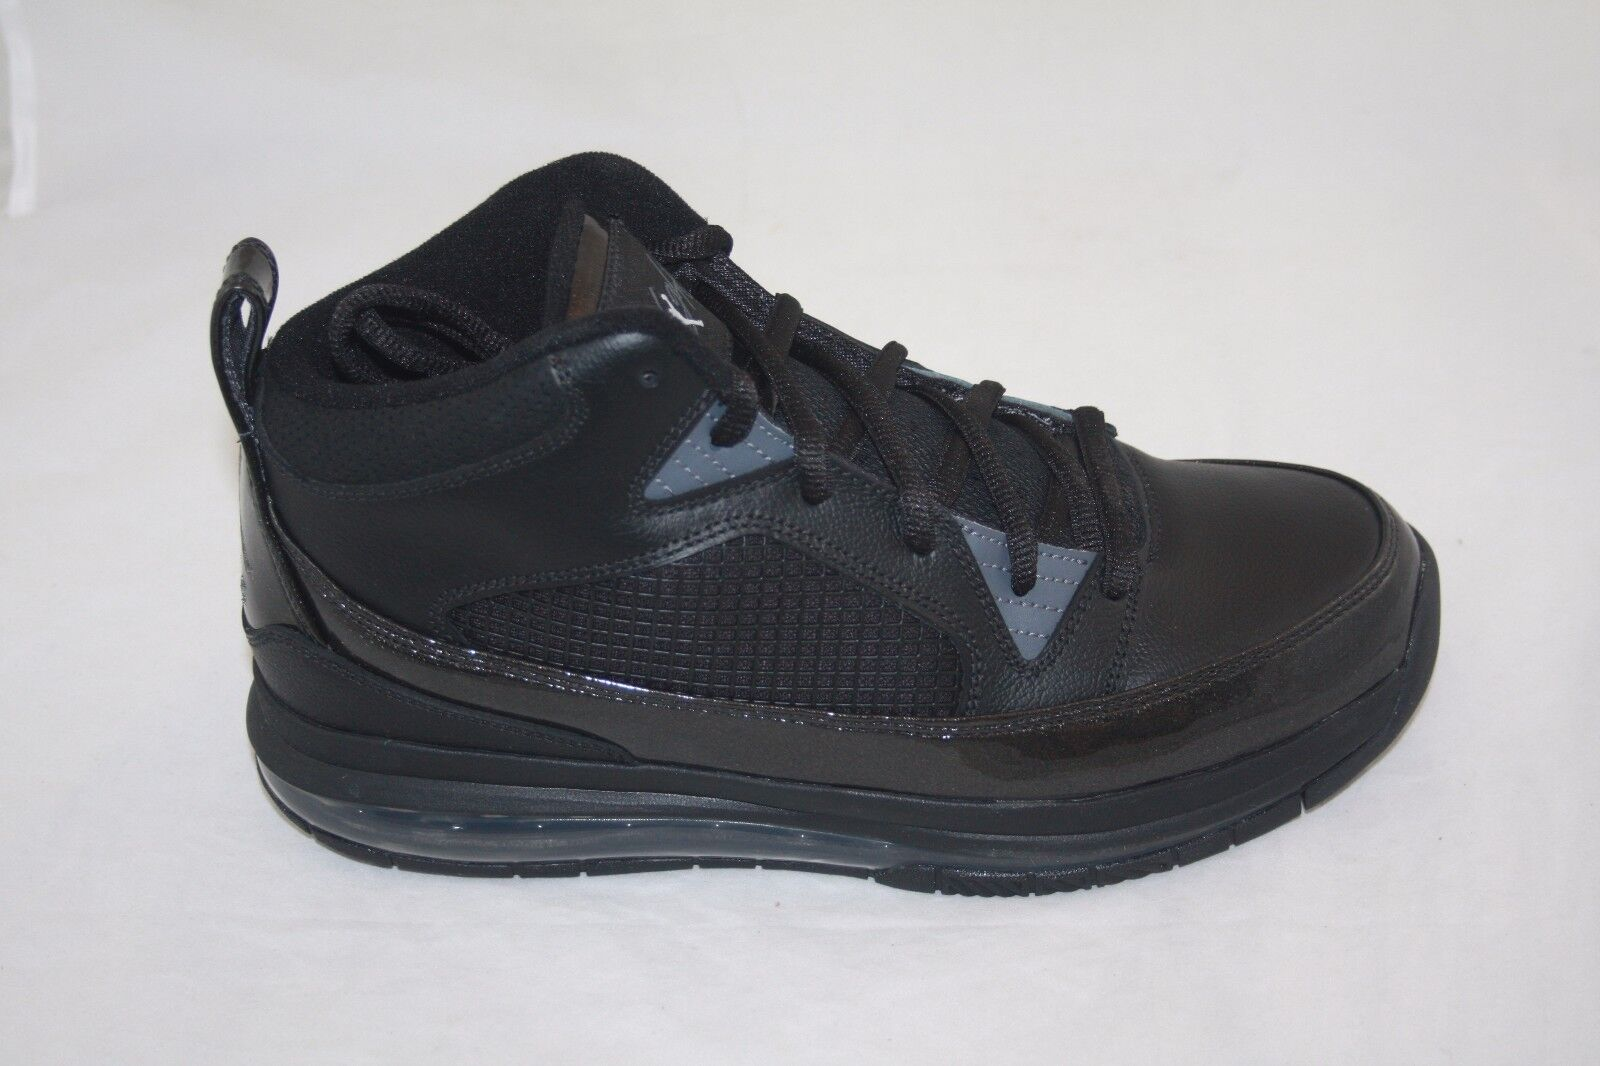 NEW MEN'S  JORDAN FLIGHT 9 MAX RST 486875-002 BLACK/DARK GREY BASKETBALL SHOE